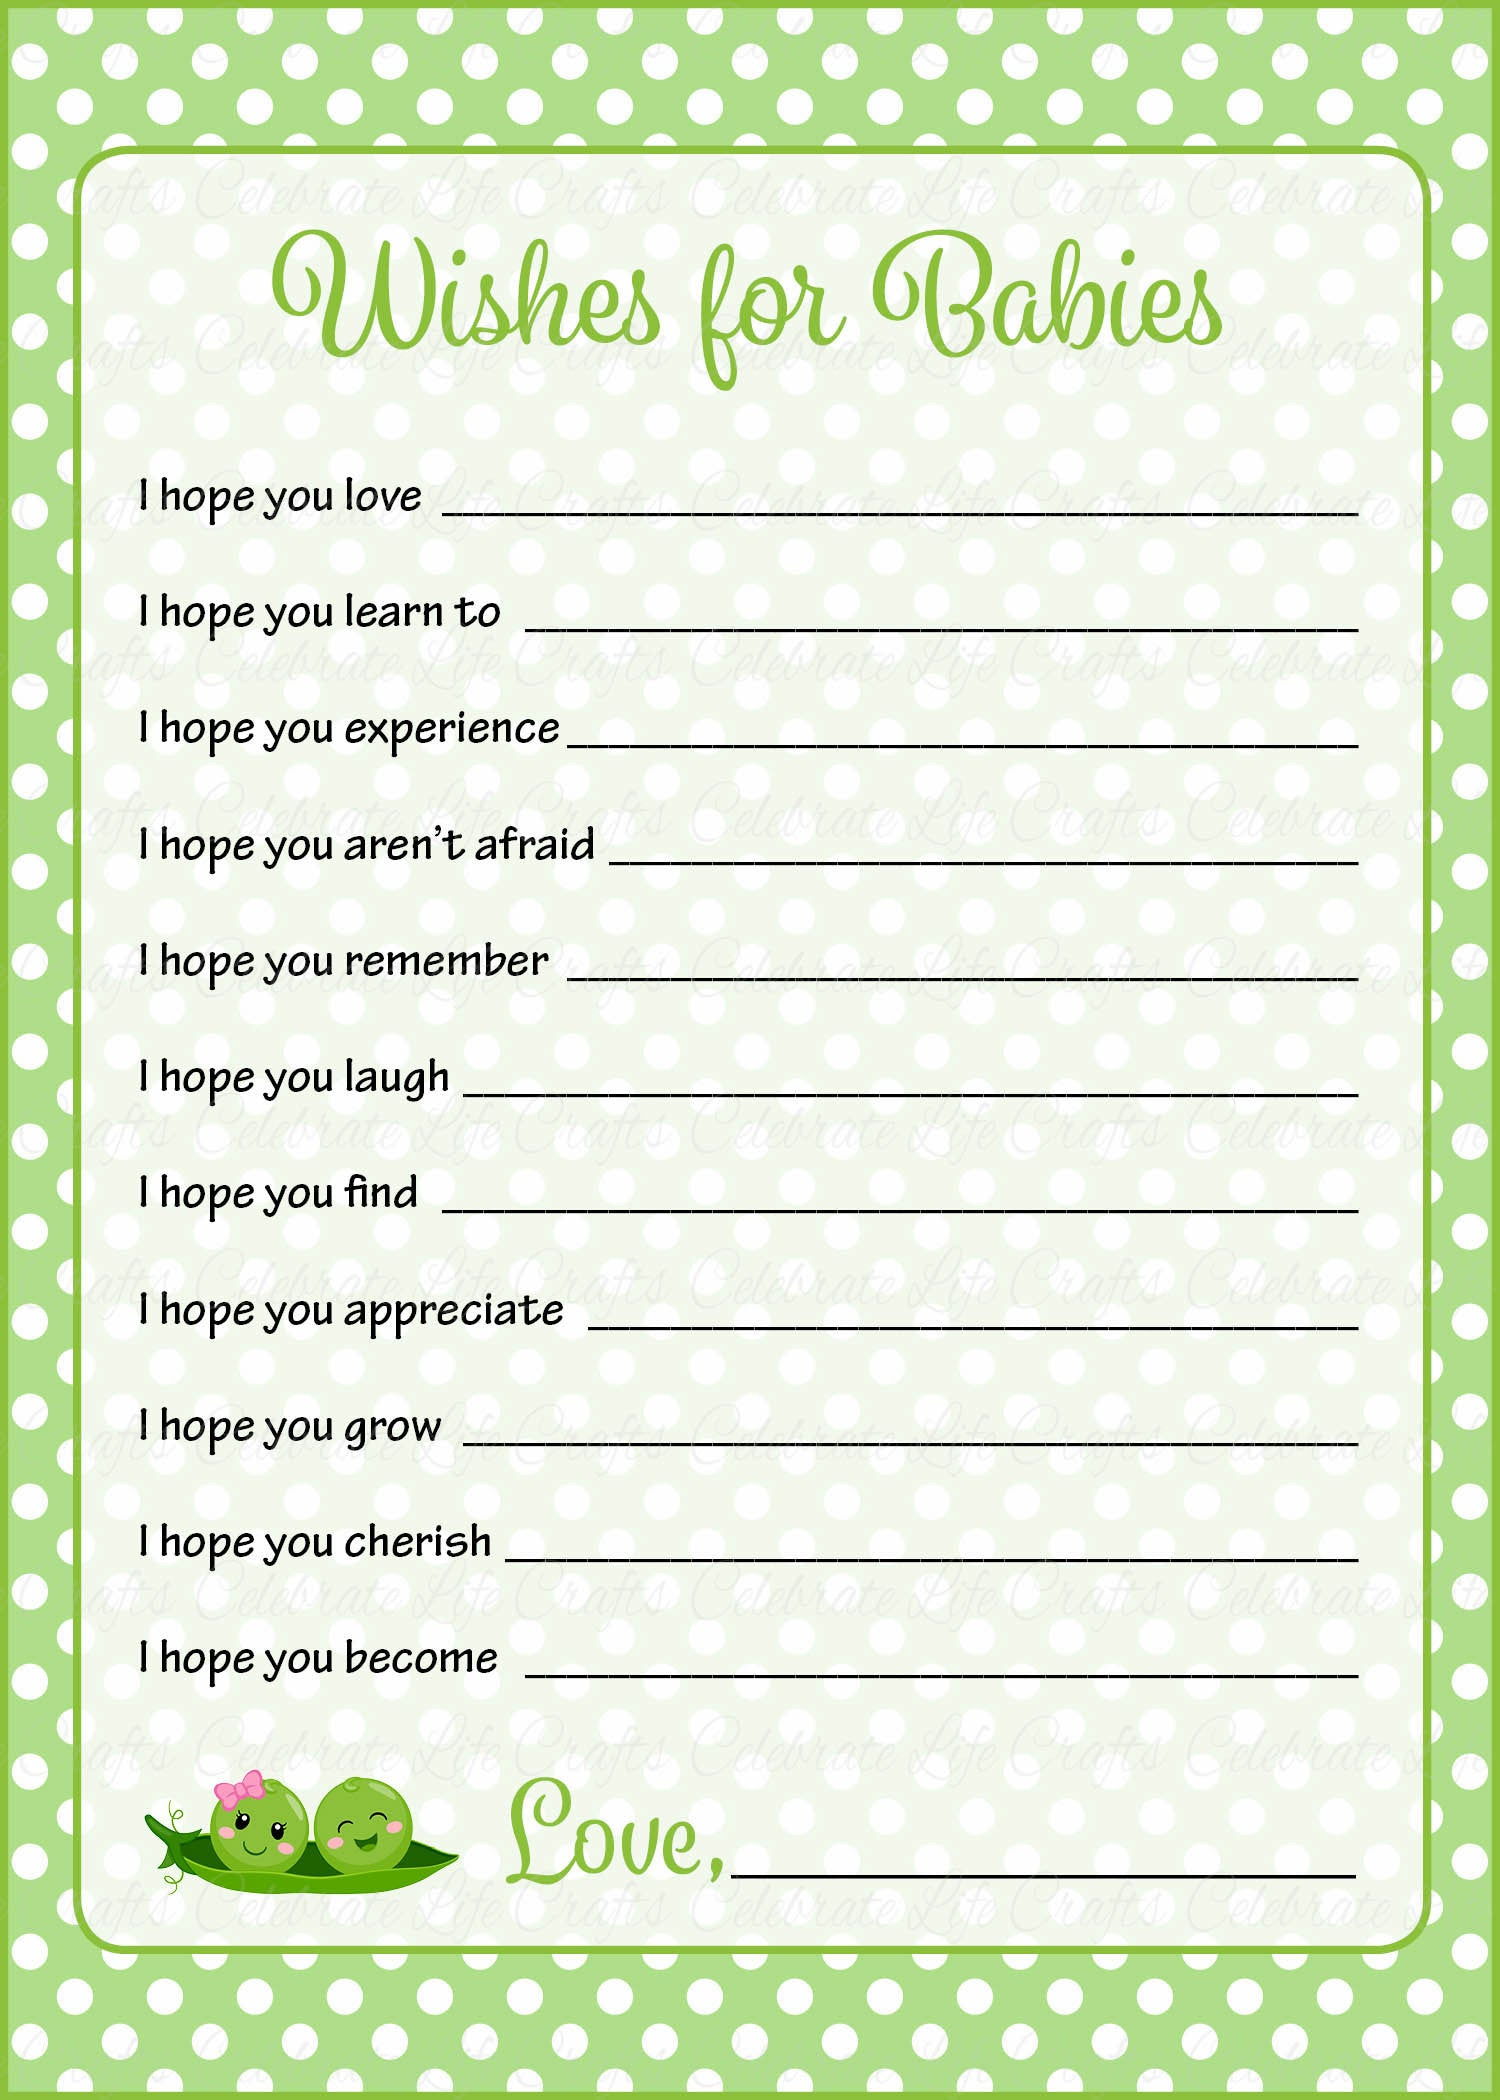 Image Of Wishes For Baby Cards For Baby Shower Amazoncom Baby Shower